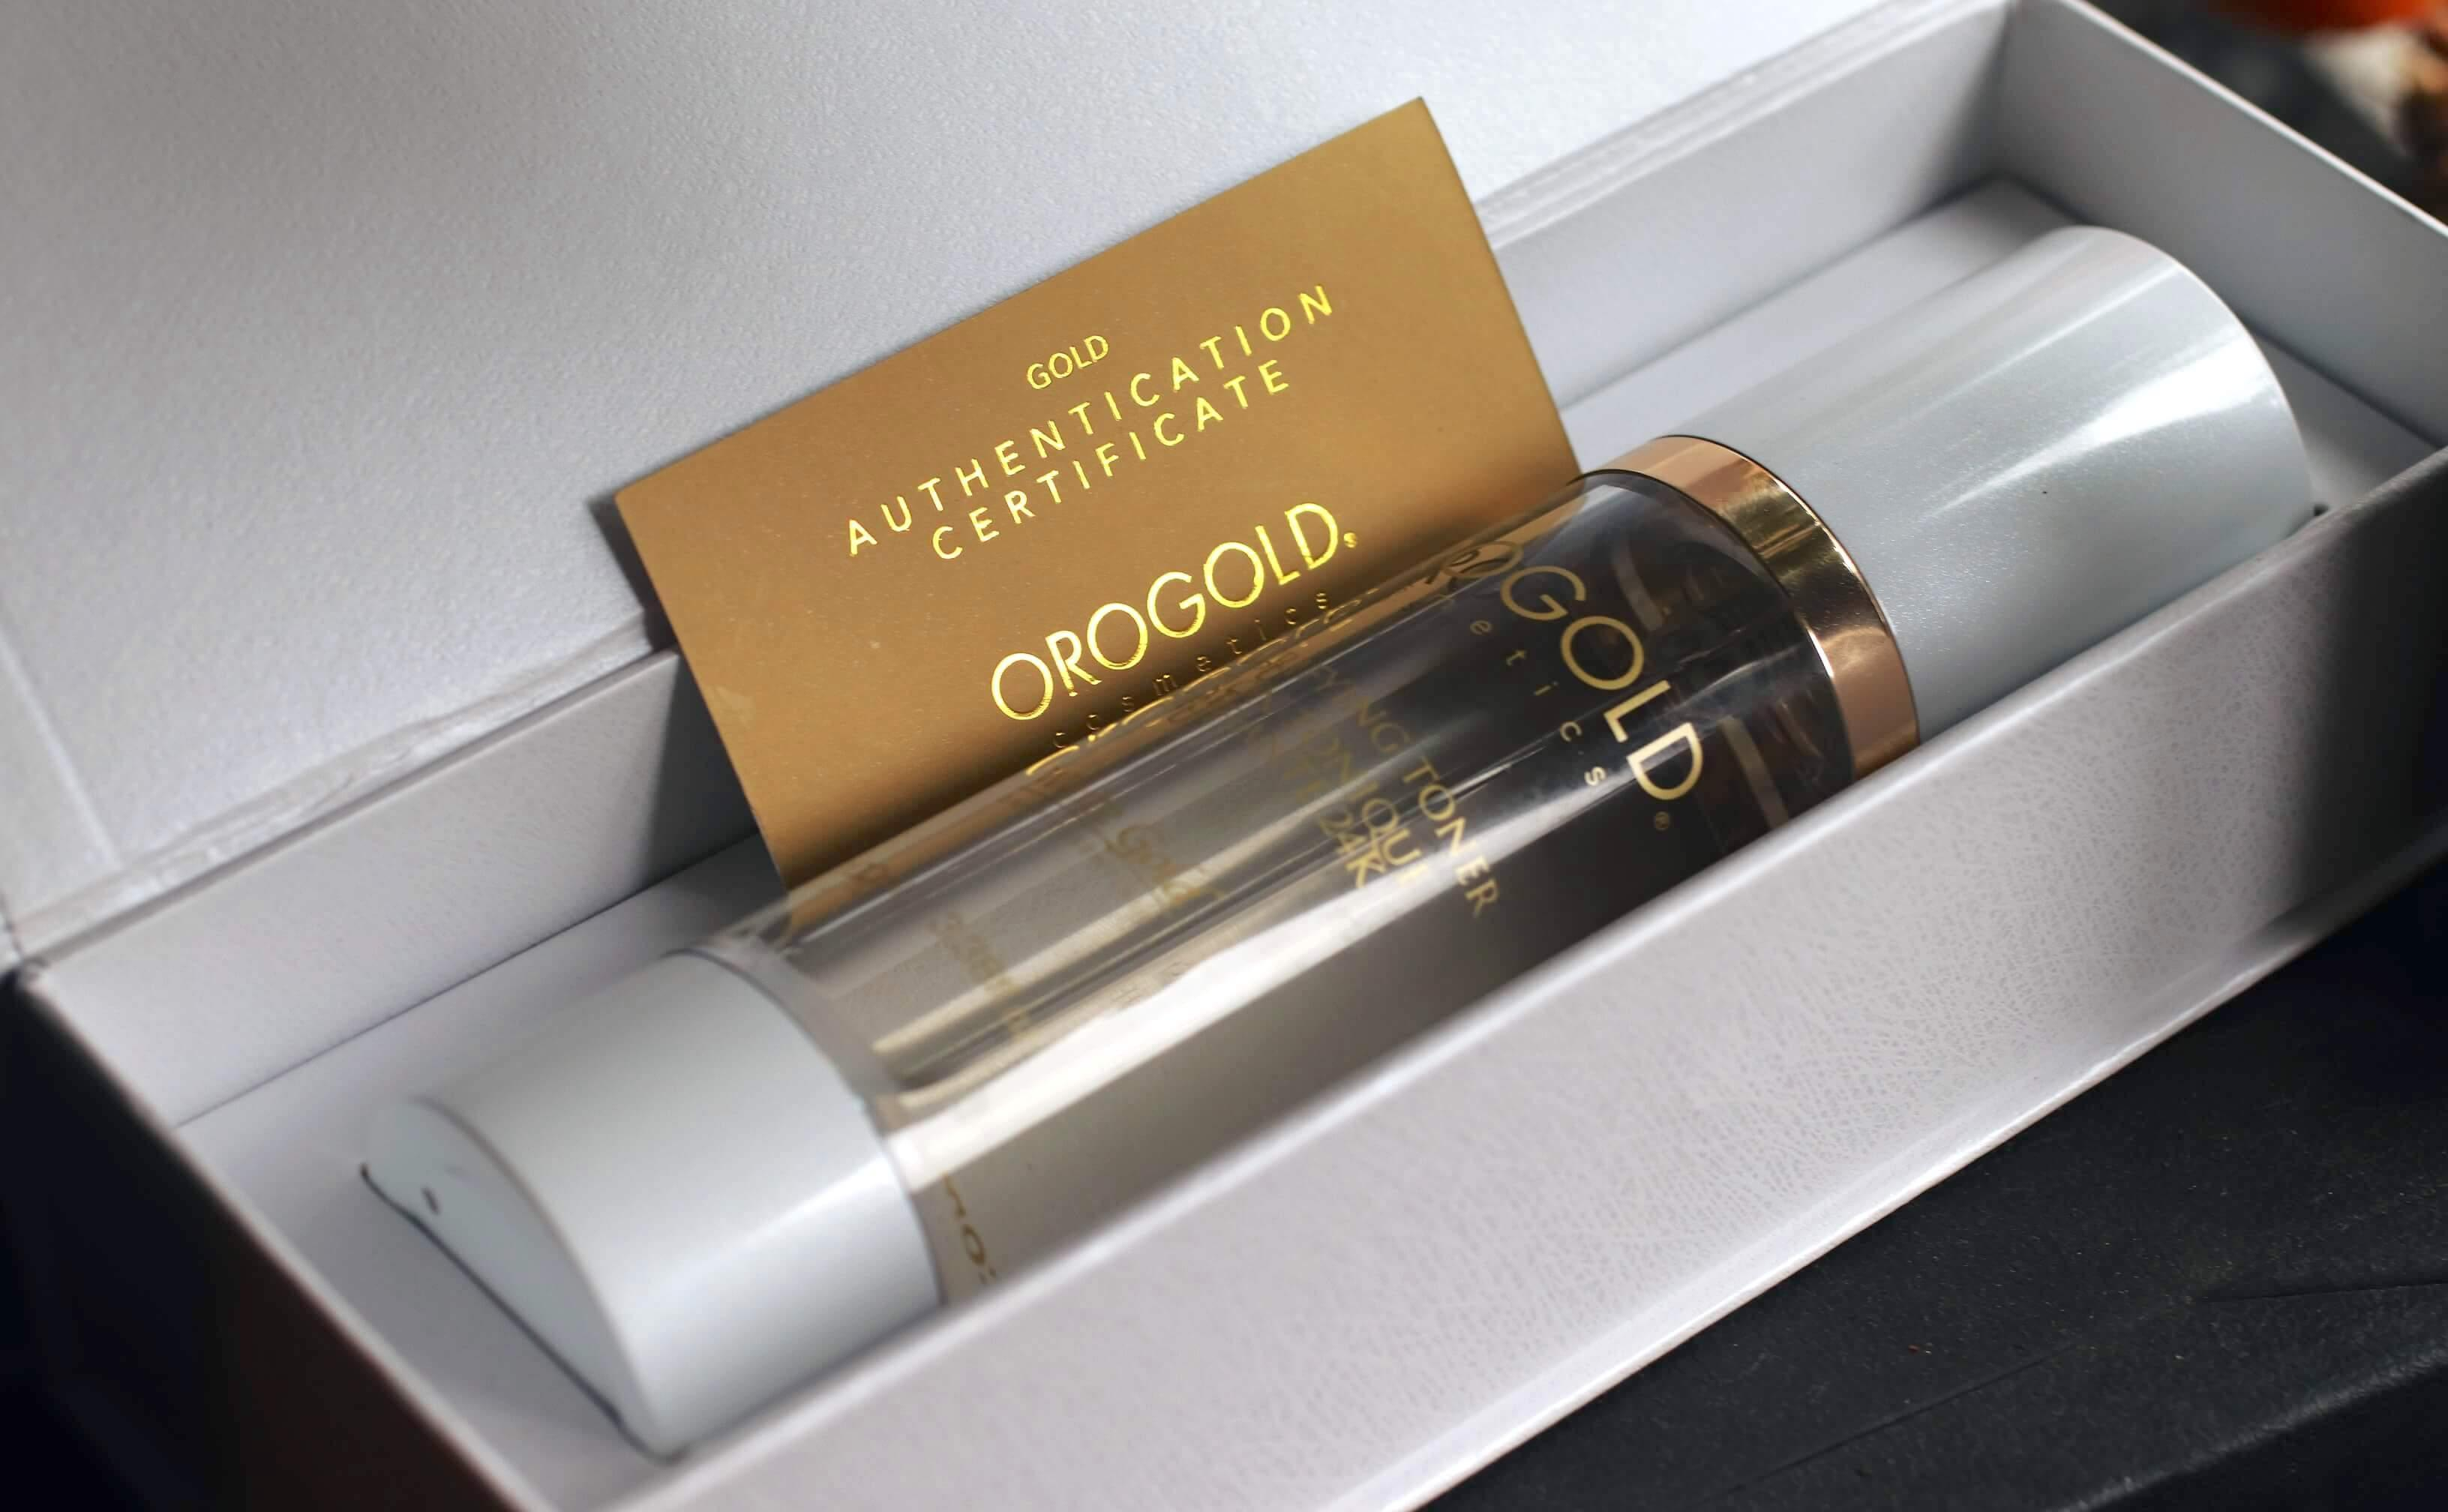 OROGOLD 24K White Gold Purifying Toner review